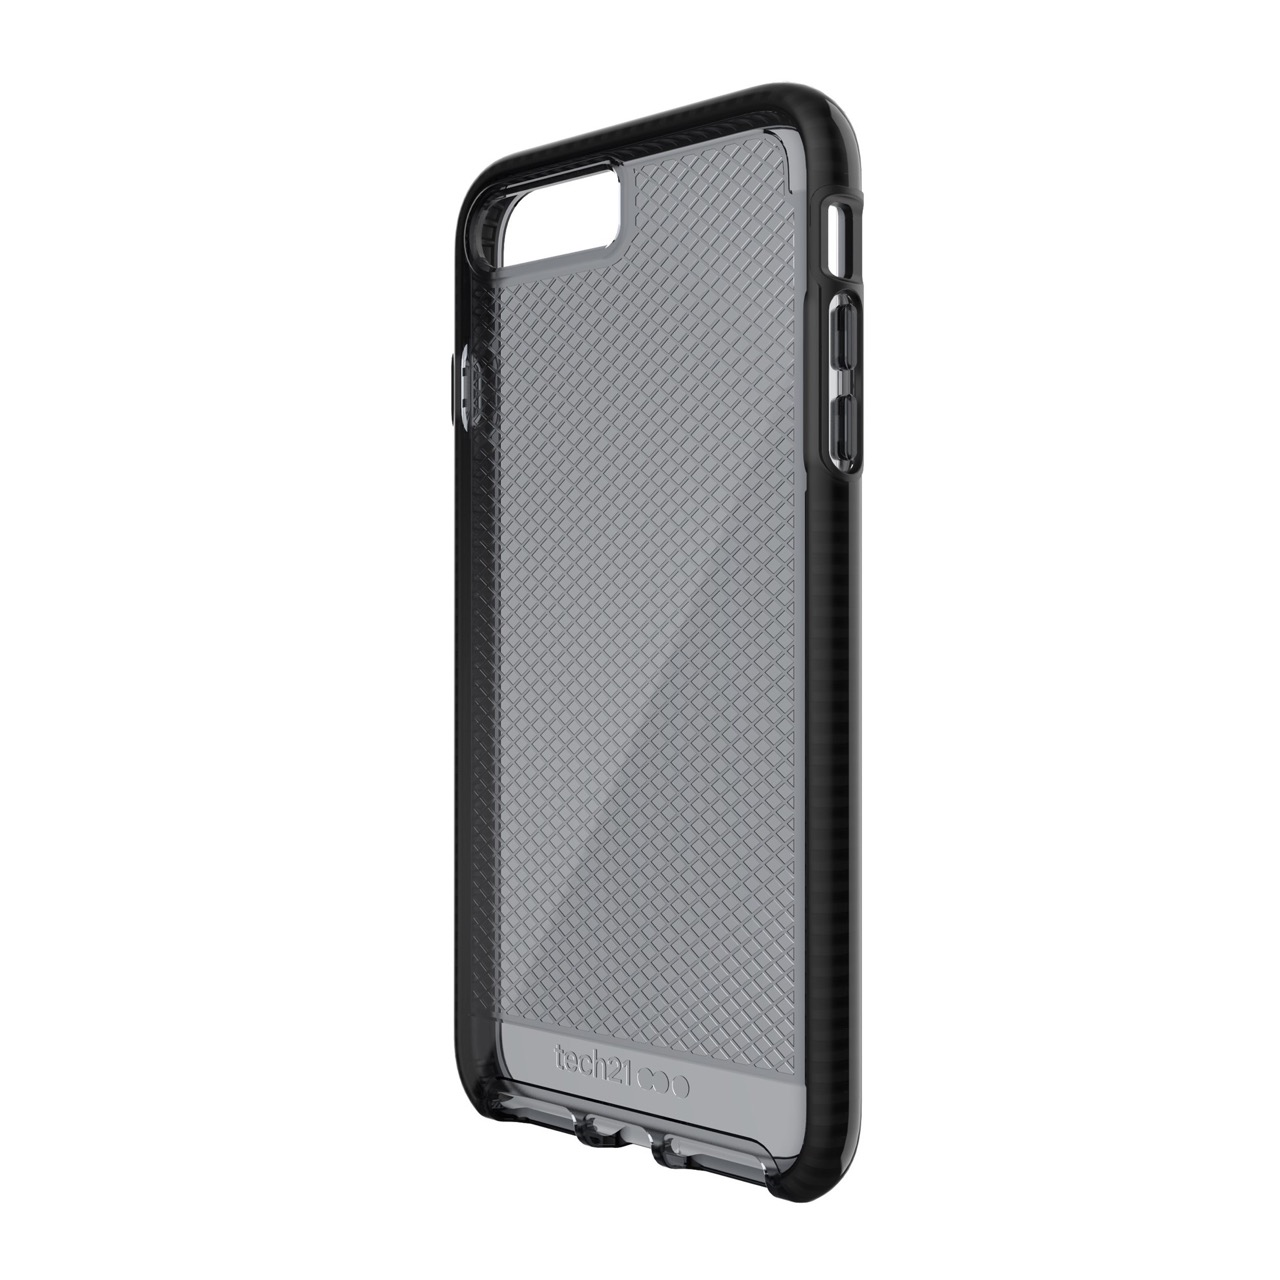 new product 4ccf7 71741 Tech21 Evo Check Case for iPhone 7 Plus